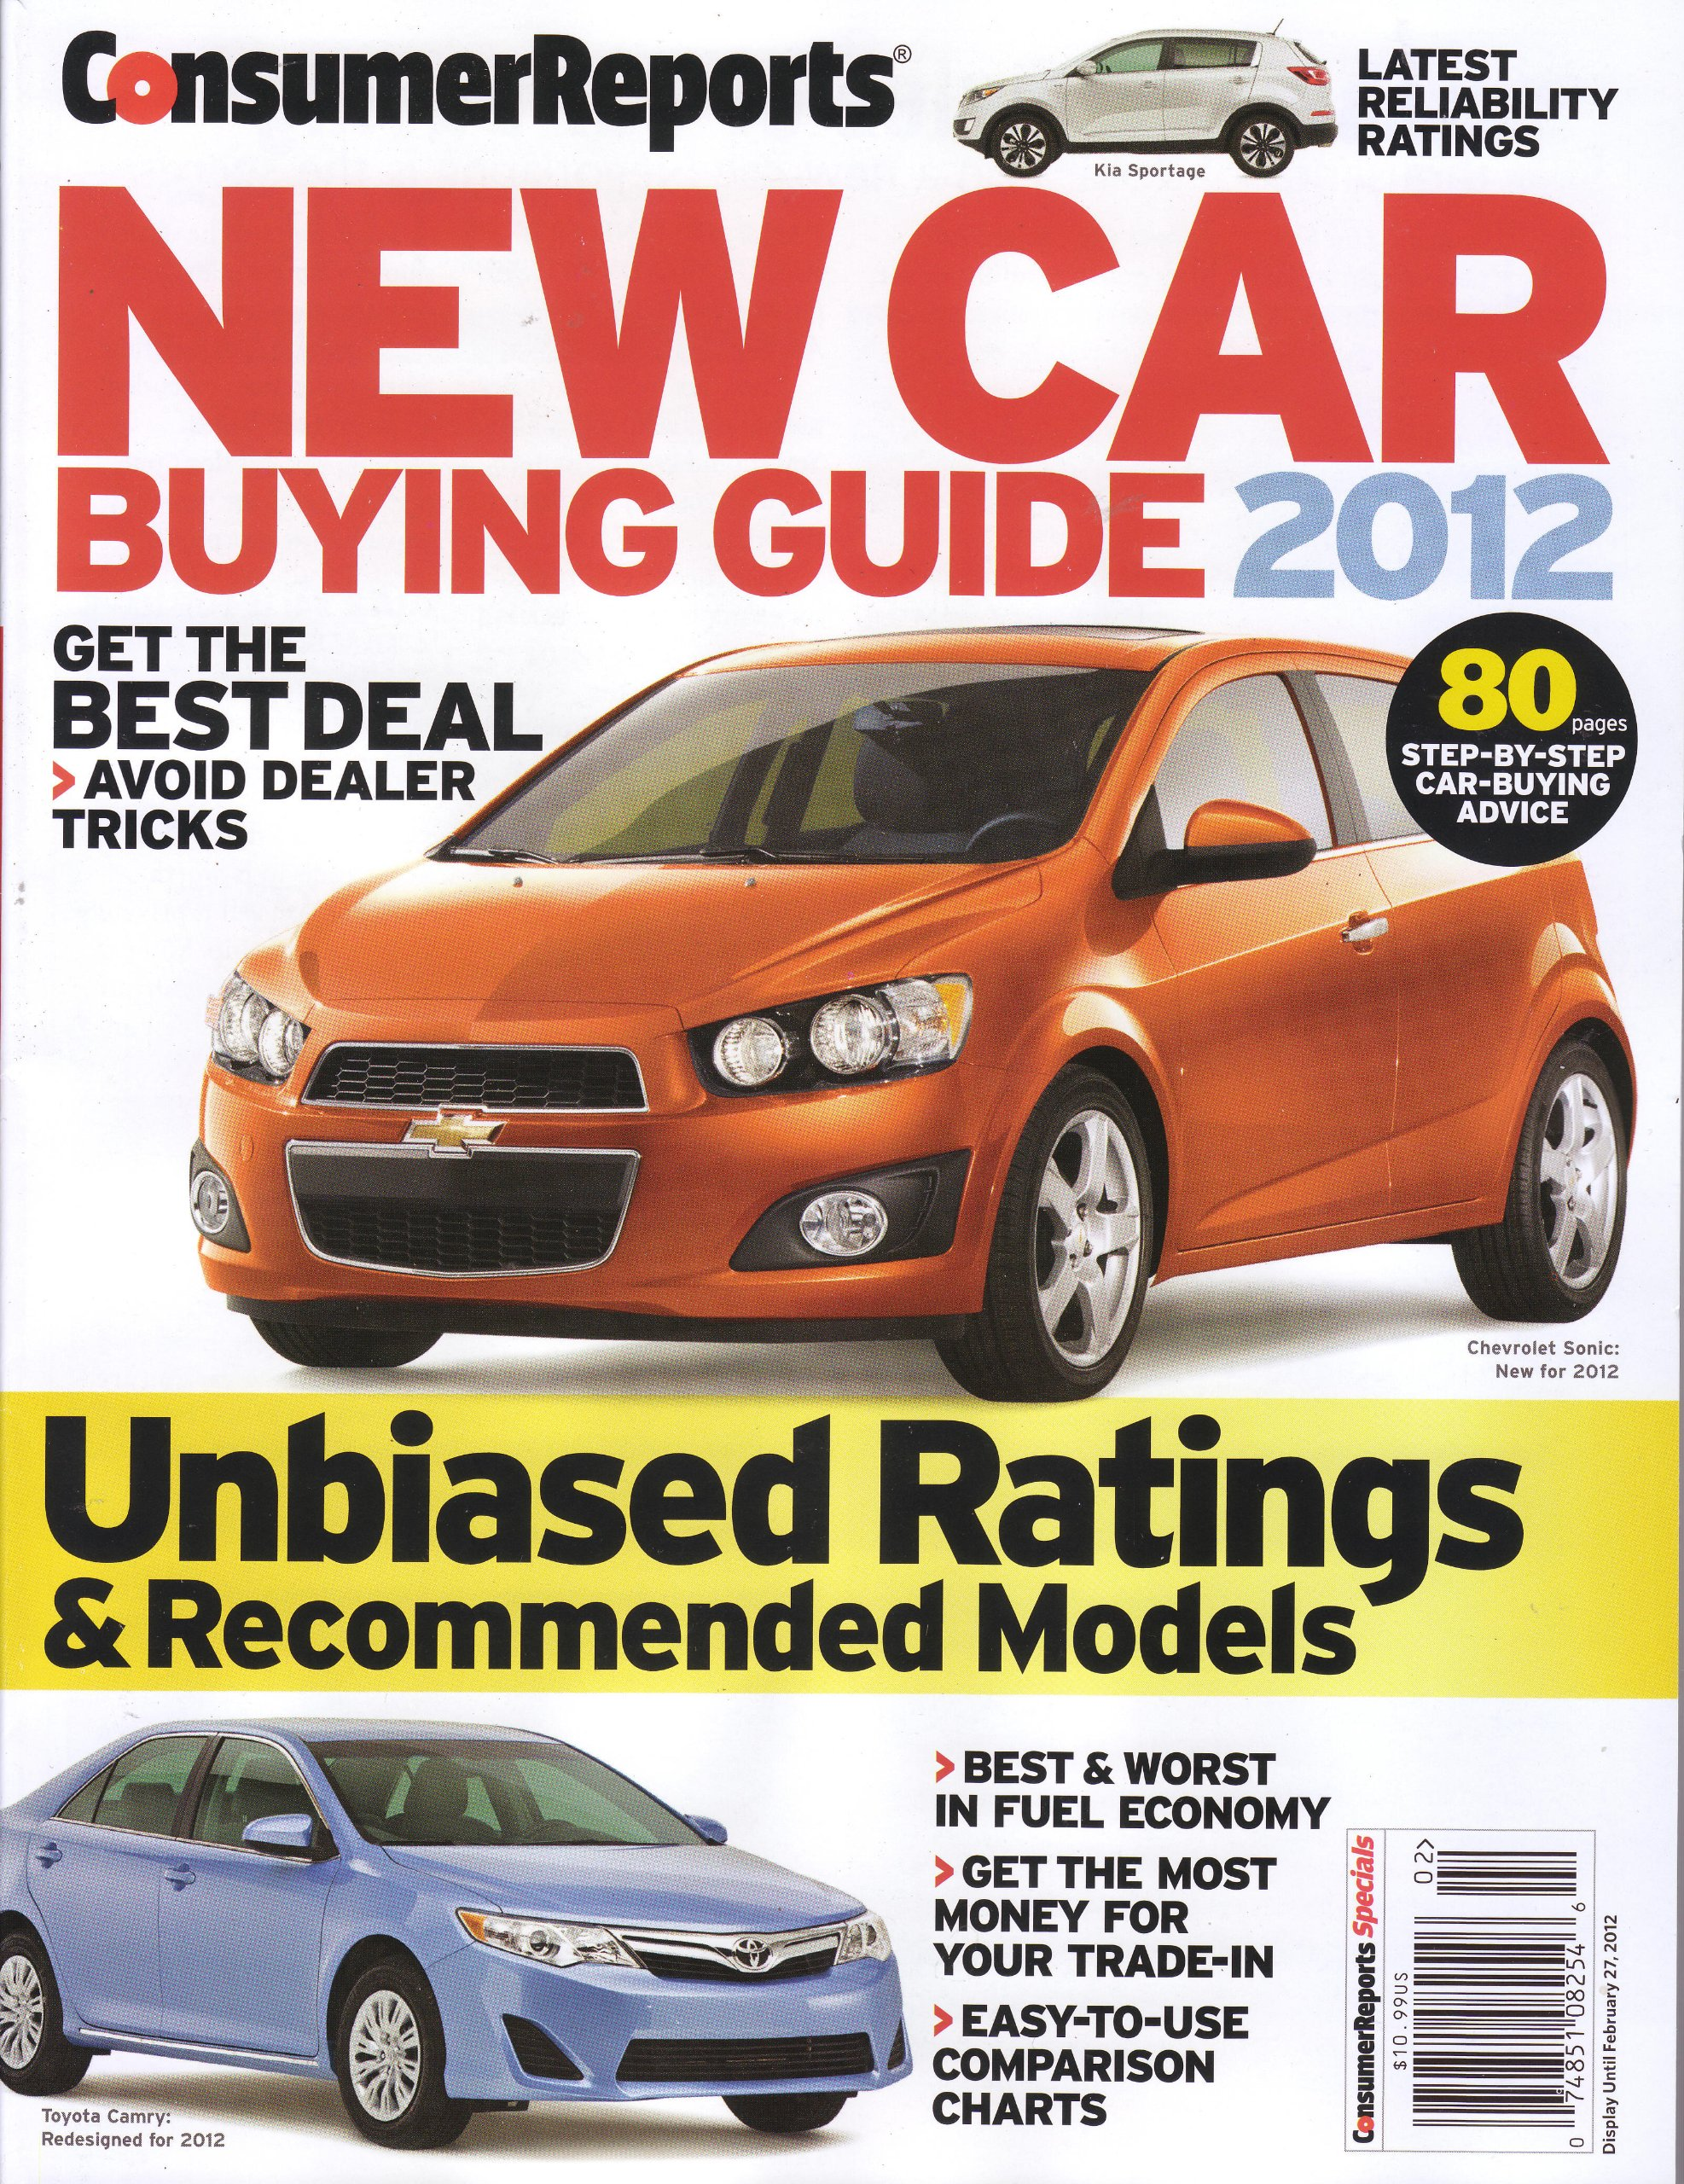 consumer reports new car buying guide 2012 unbiased ratings rh amazon com consumer reports buying guide 2016 consumer reports buying guide 2017 pdf